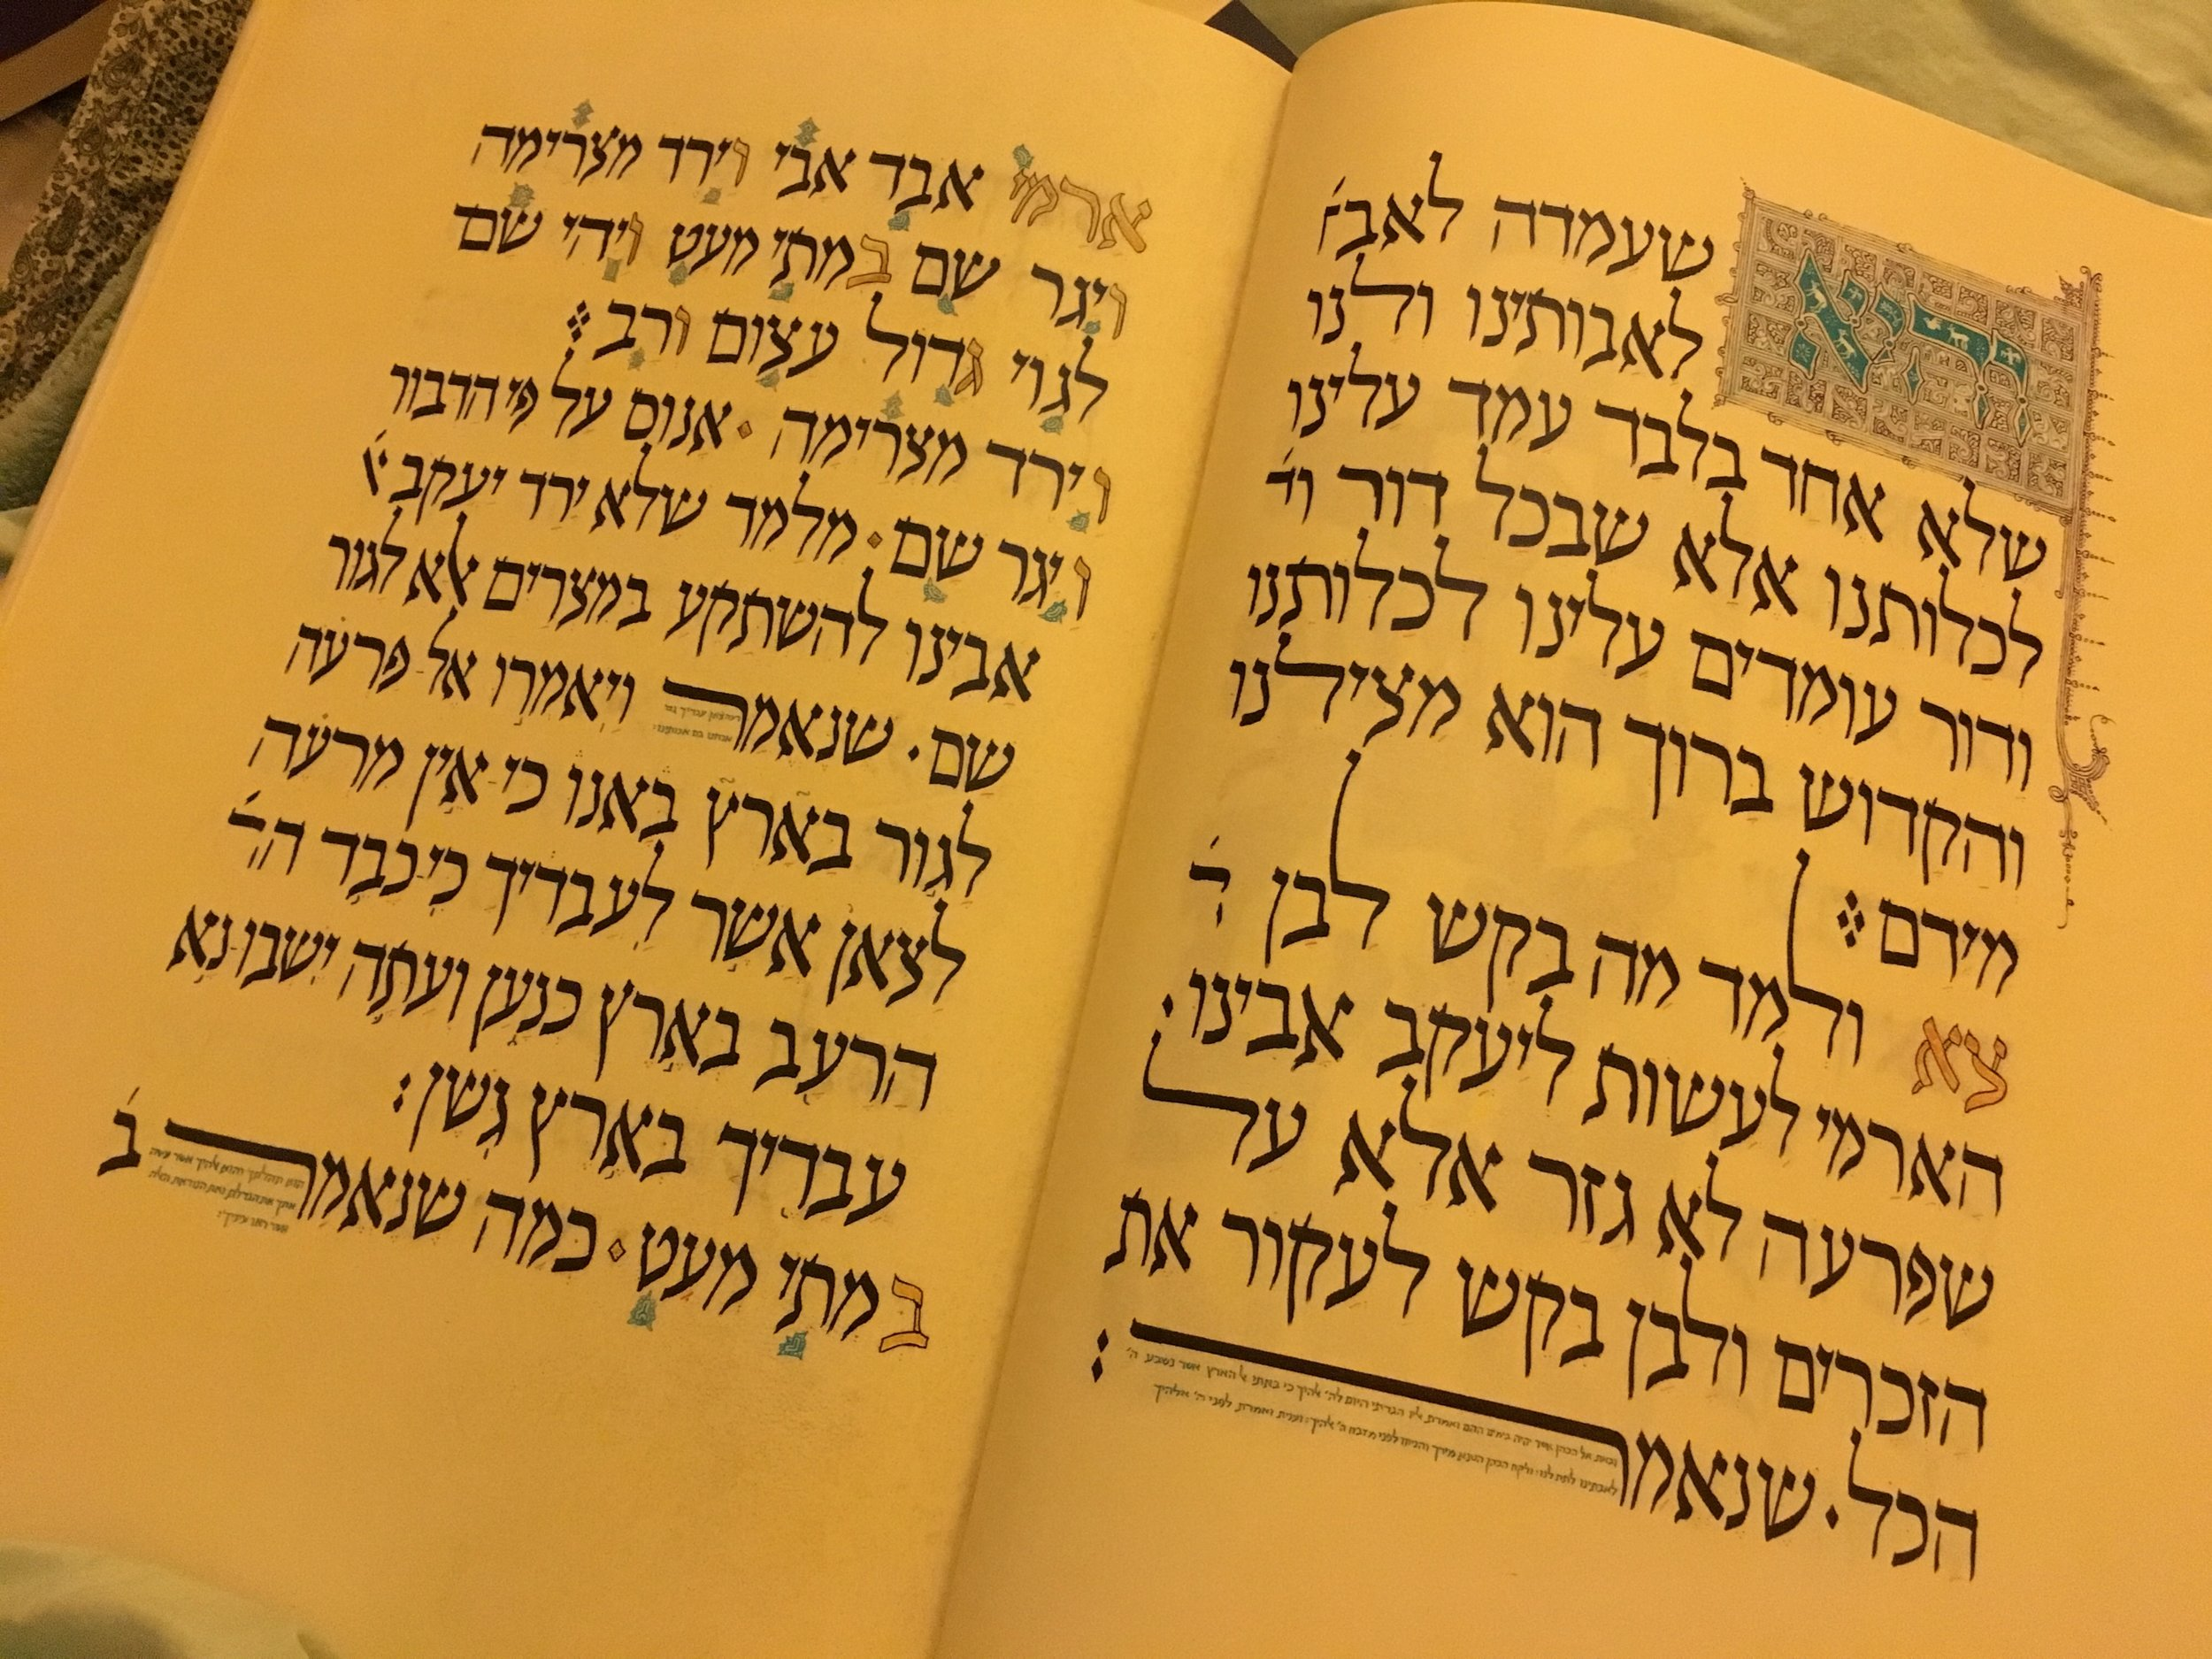 A page from the Moss Haggadah